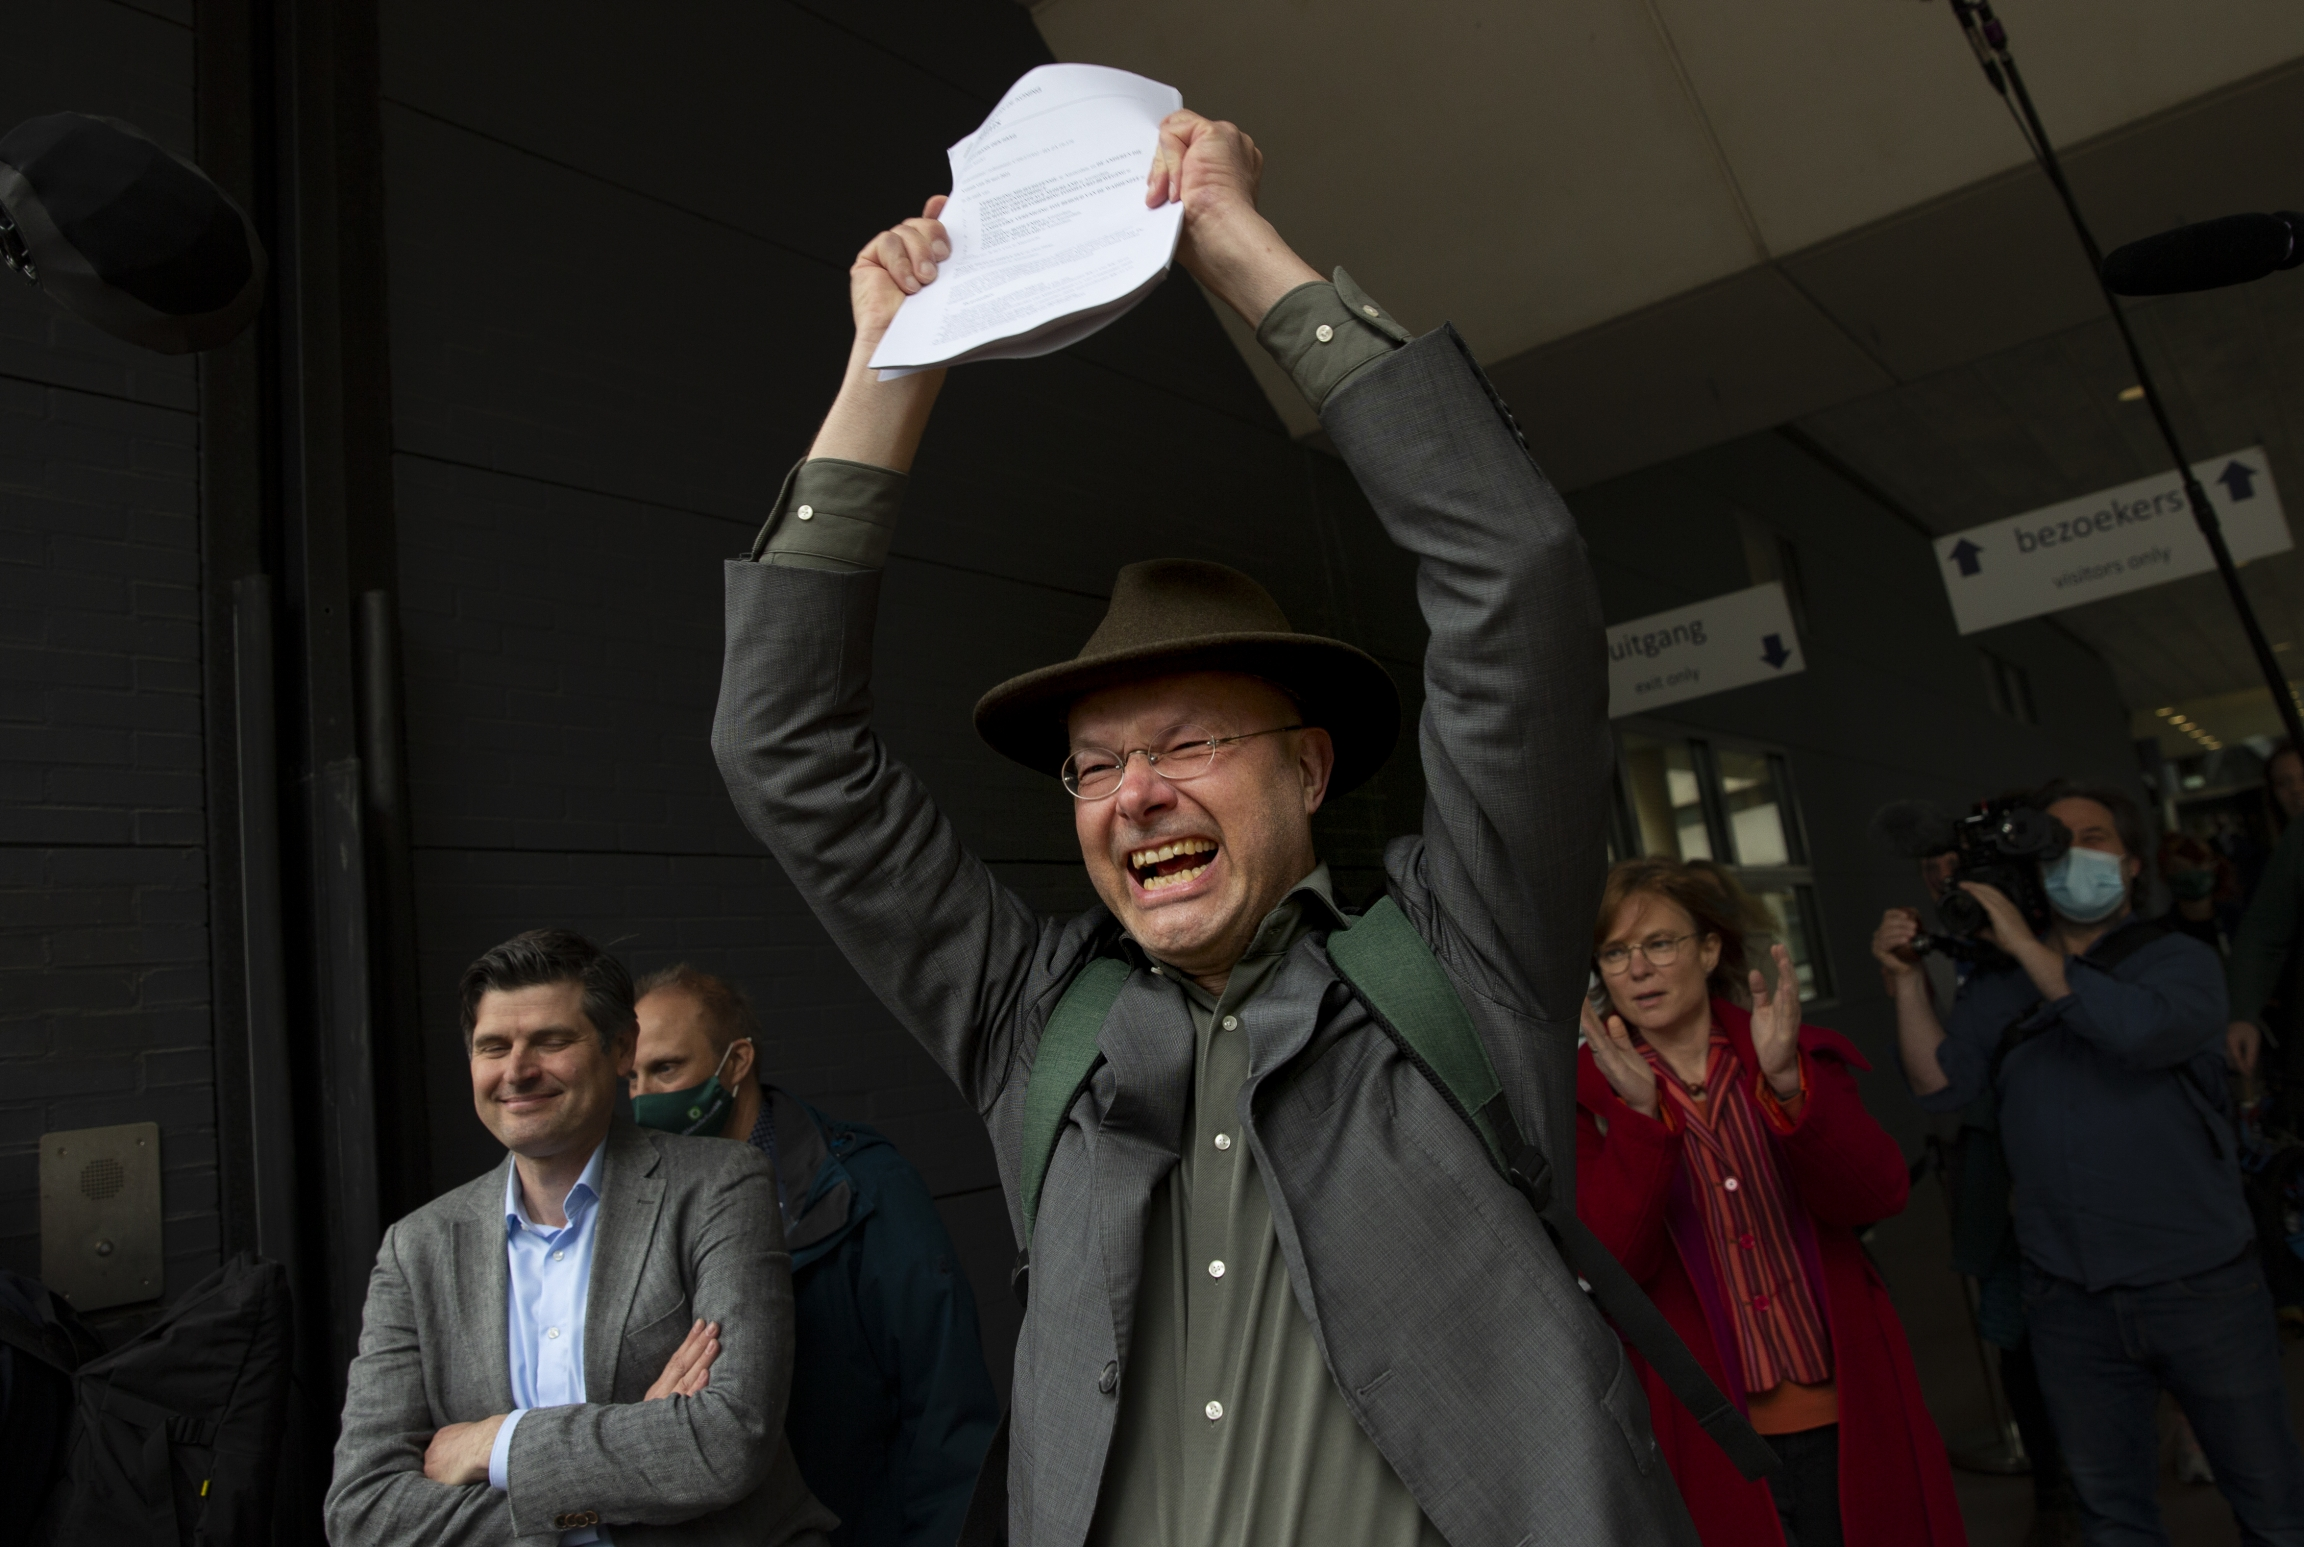 A man victoriously holds up a piece of paper and smiles as other people around him also smile